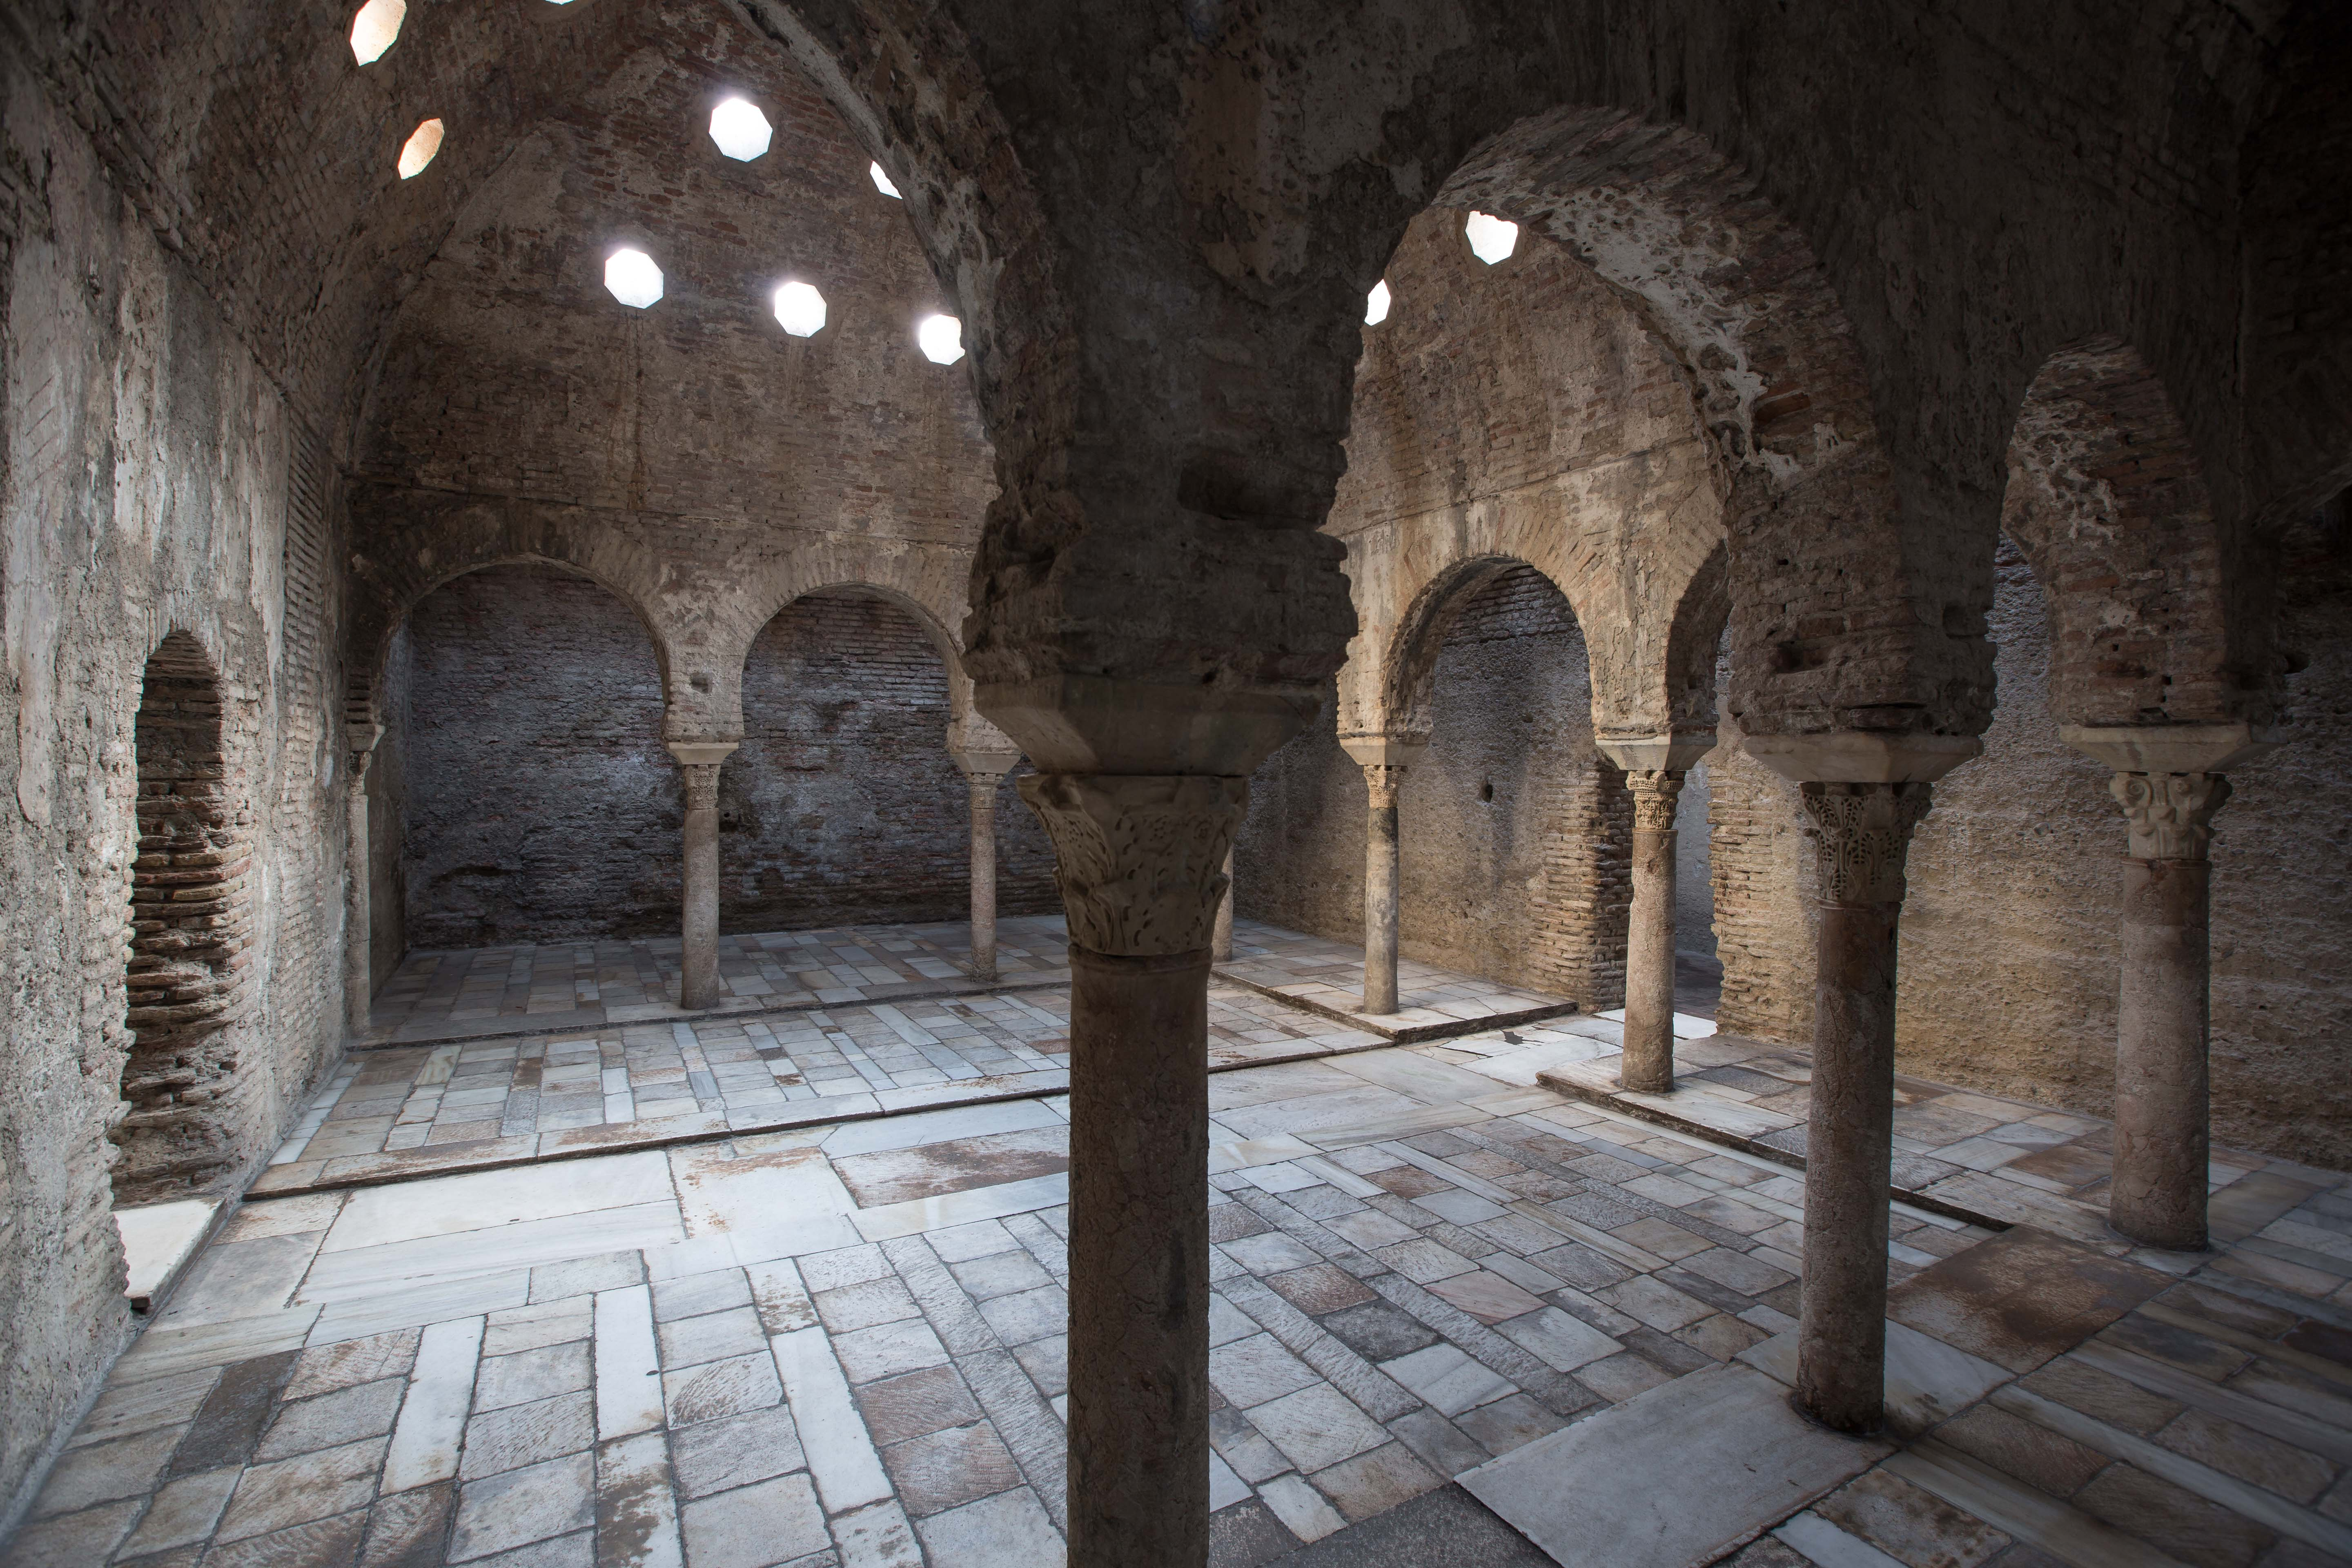 The Alhambra is opening the Bañuelo Arabic bath to the public after its restoration